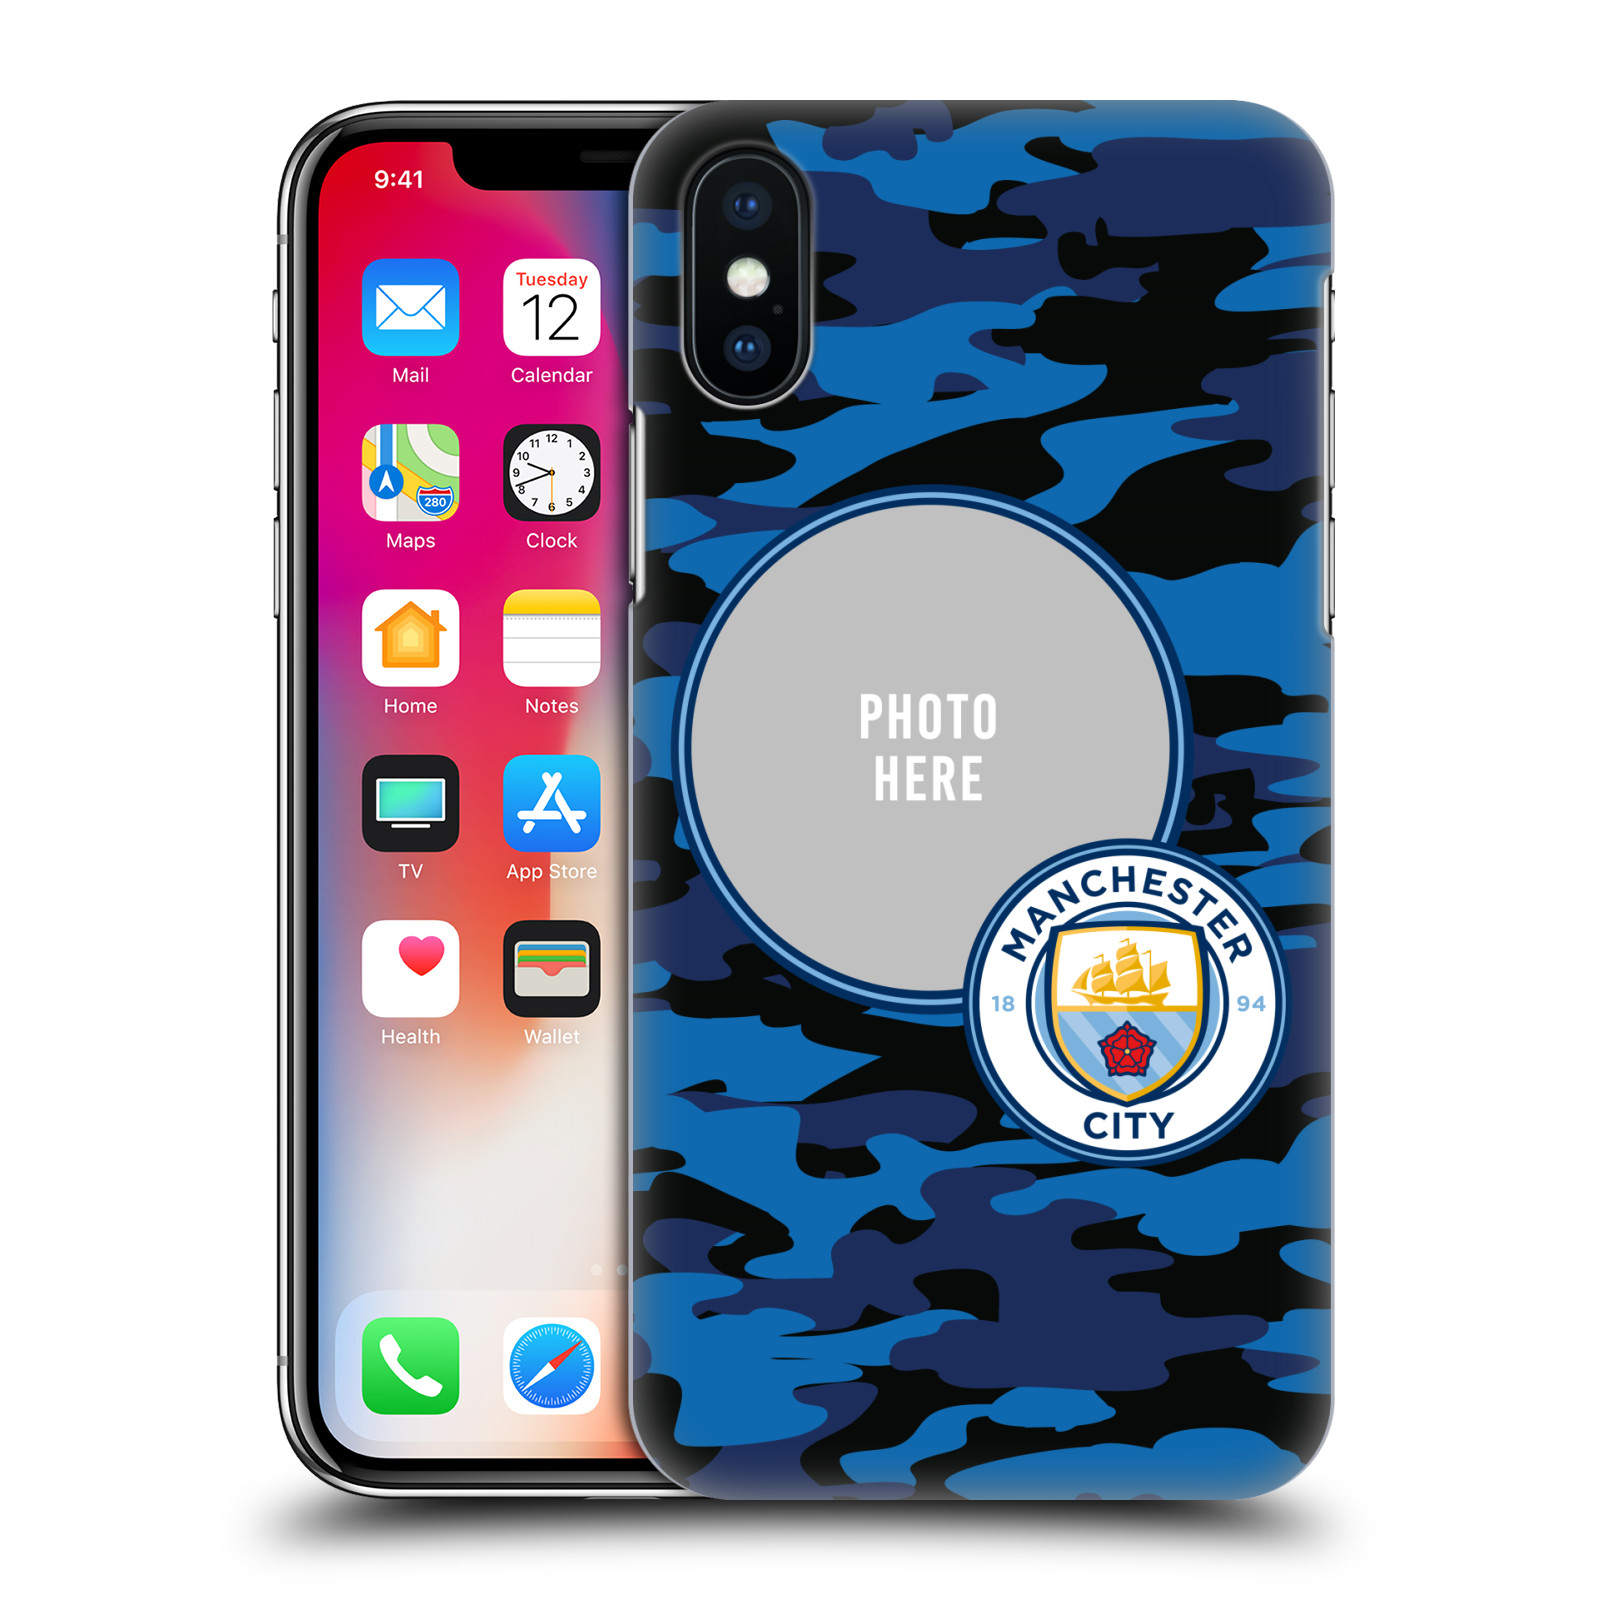 CUSTOM-MANCHESTER-CITY-MAN-CITY-FC-2017-18-LOGO-KIT-CASE-FOR-APPLE-iPHONE-PHONES